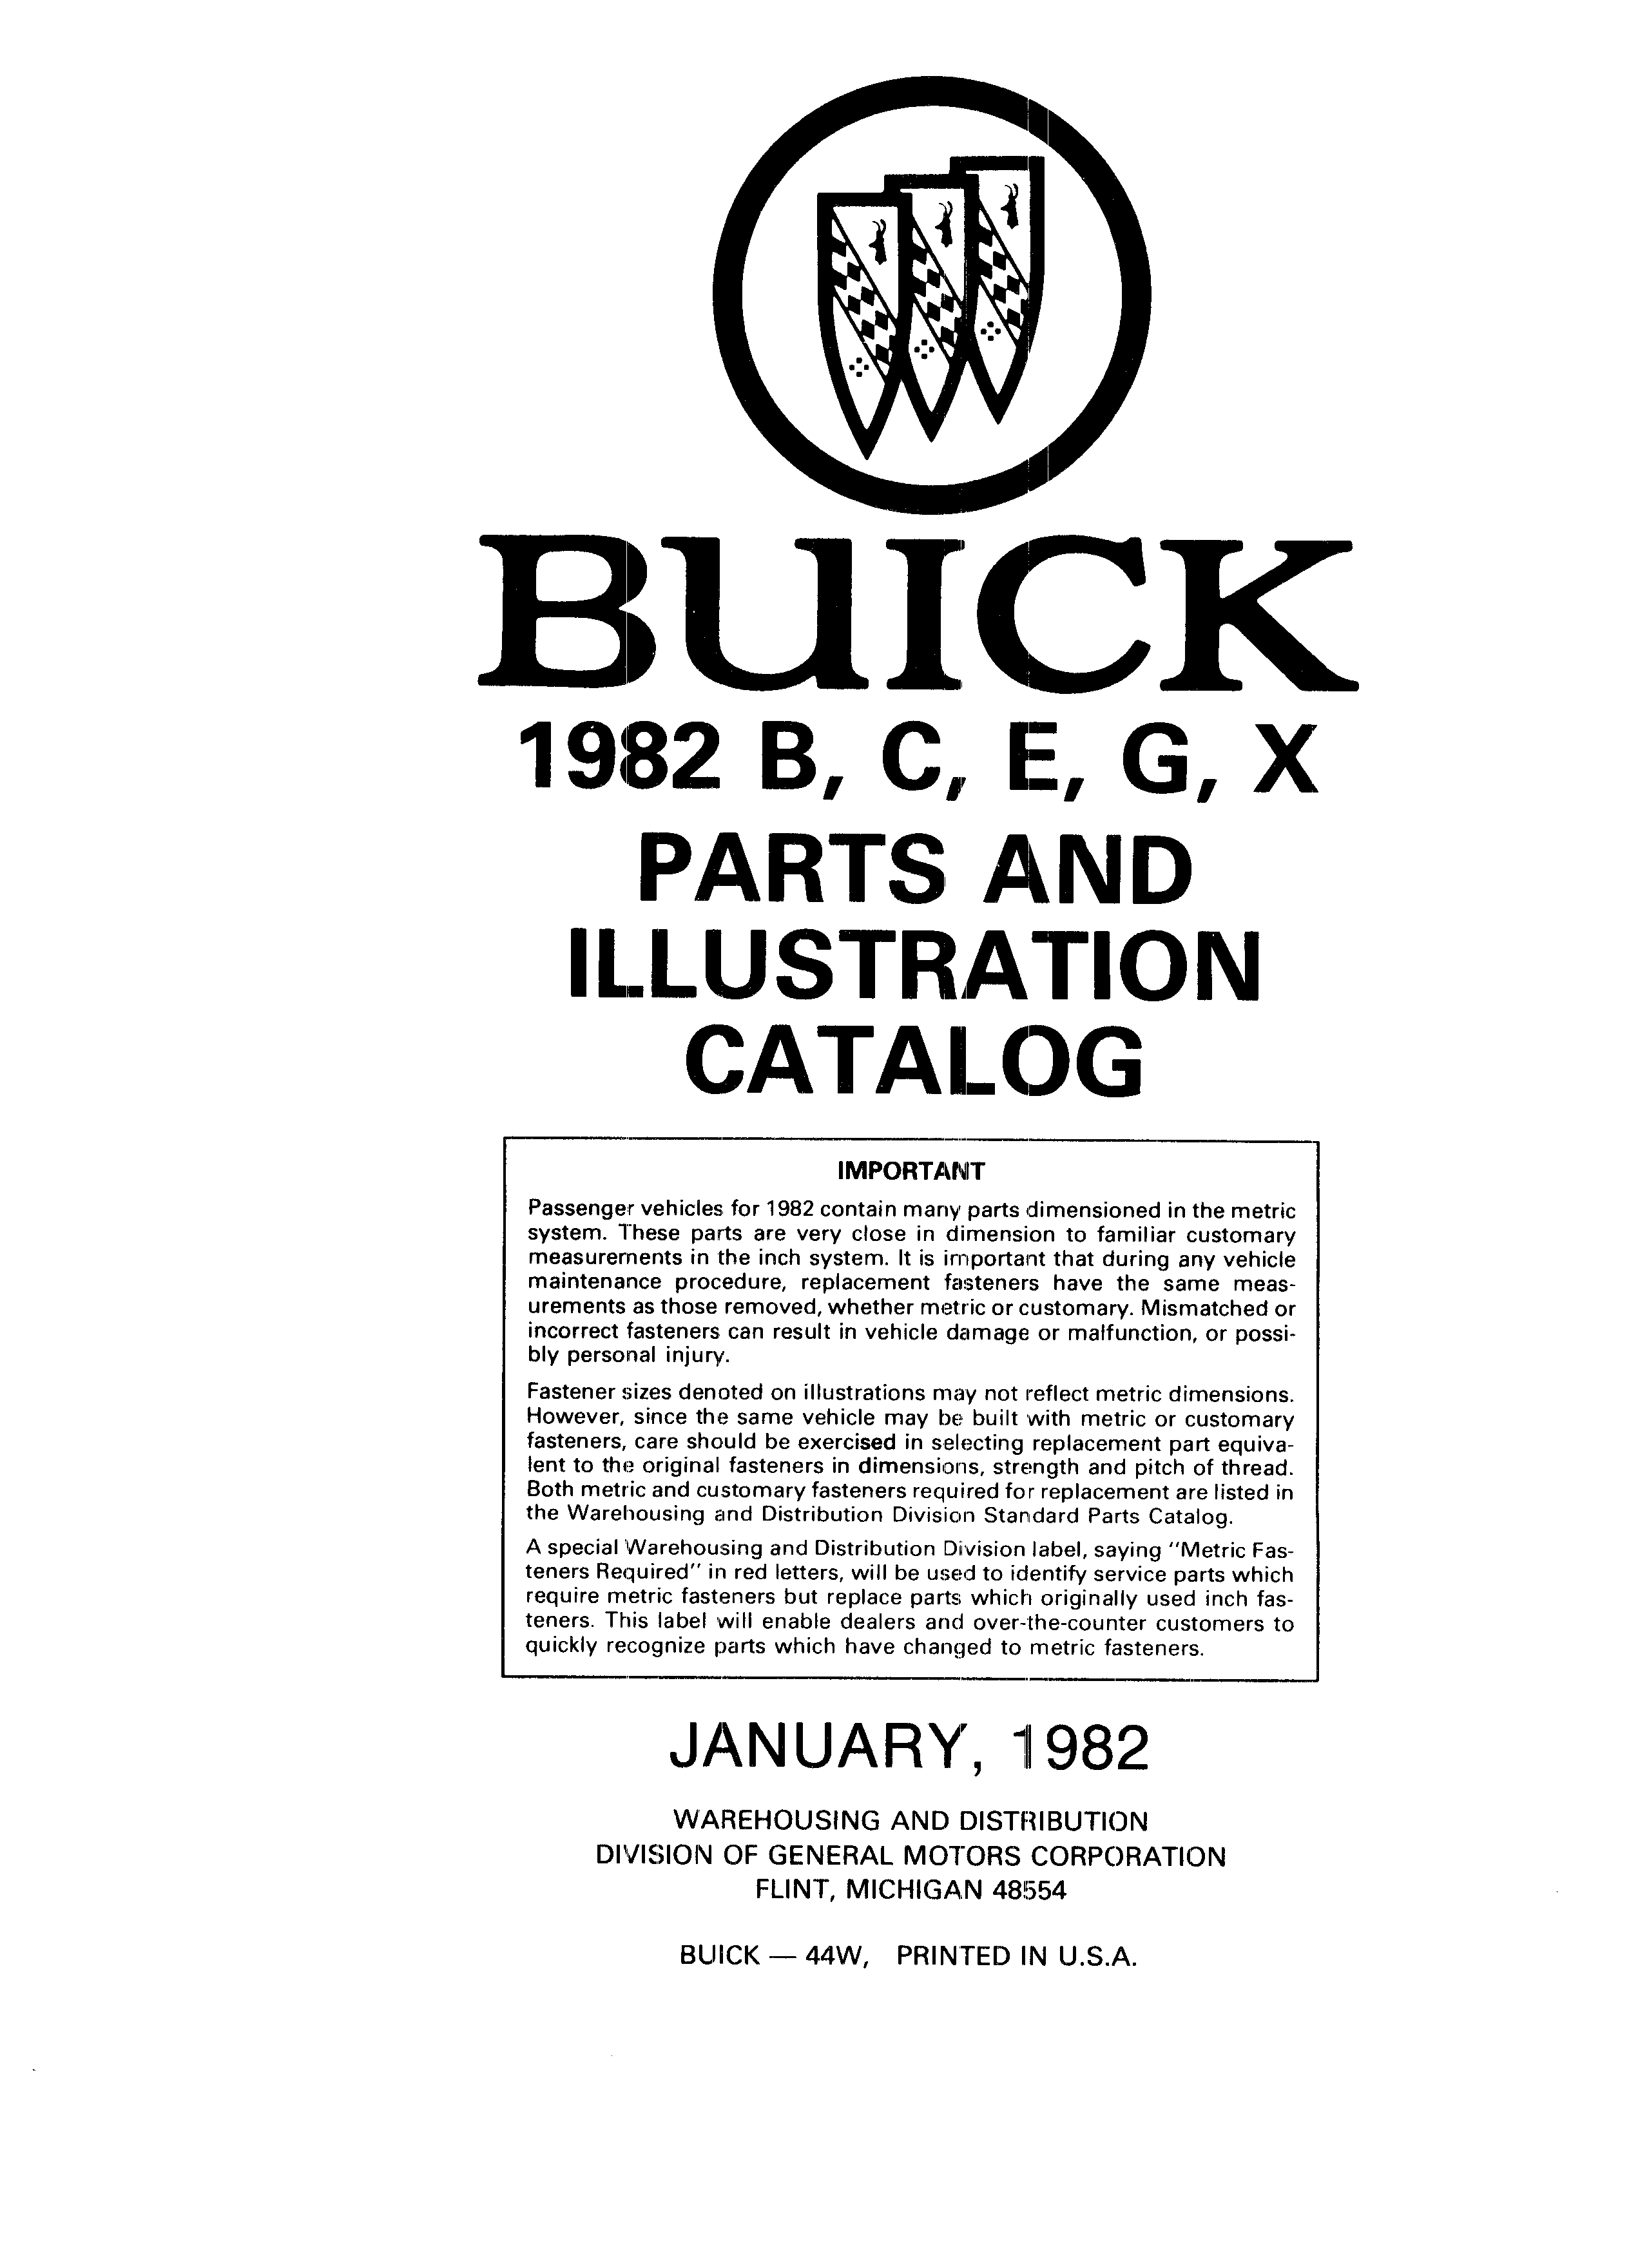 Parts and Illustration Catalog 44W January 1982